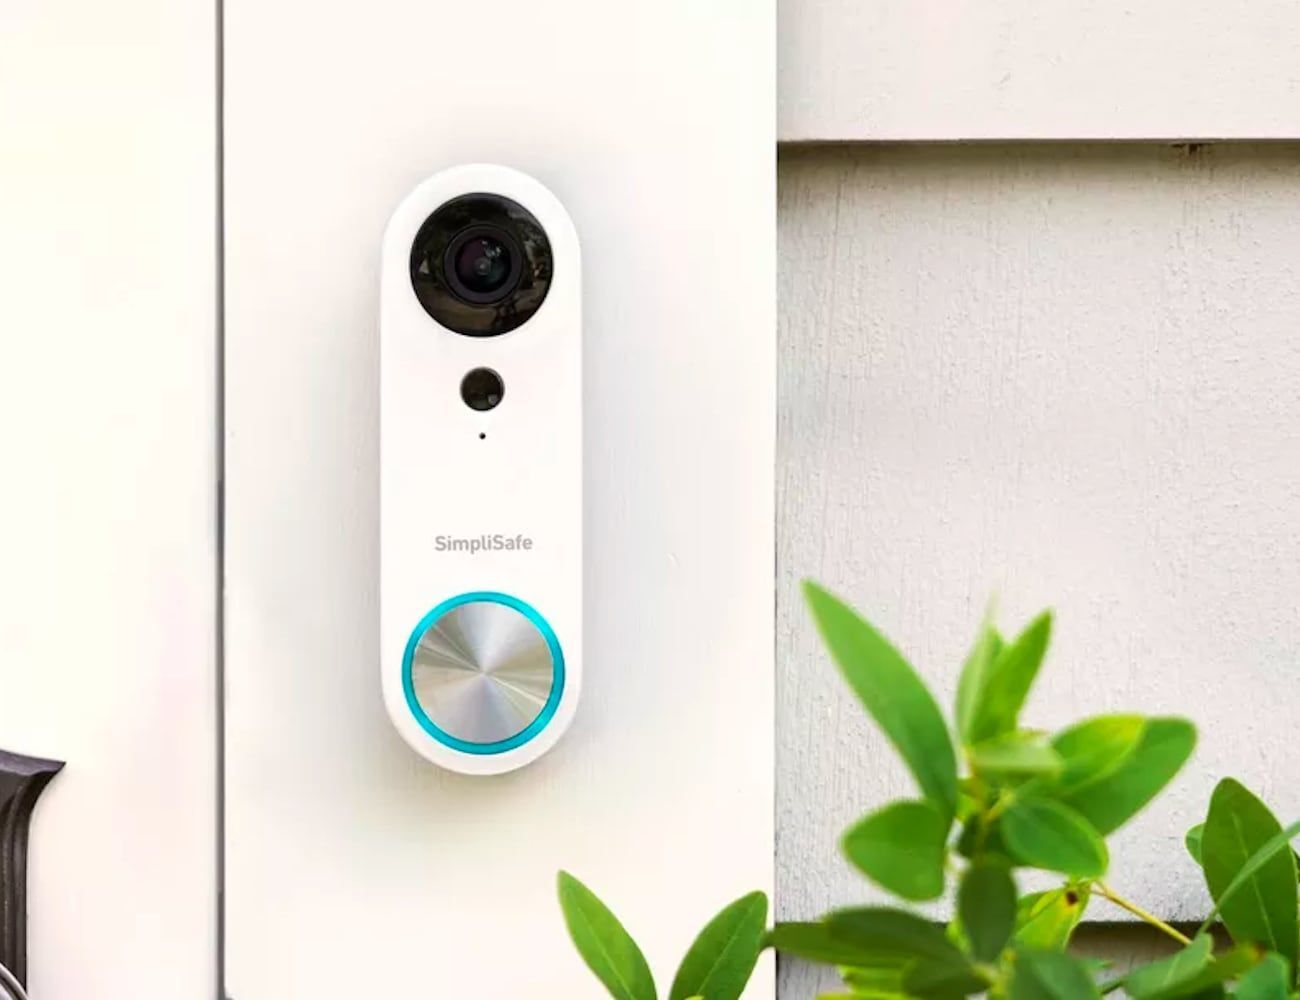 The Range Covers Everything From Smart Cameras To Smart Window Sensors And Everything In Between Blackfriday Wireless Home Security Systems Home Security Systems Smart Home Security